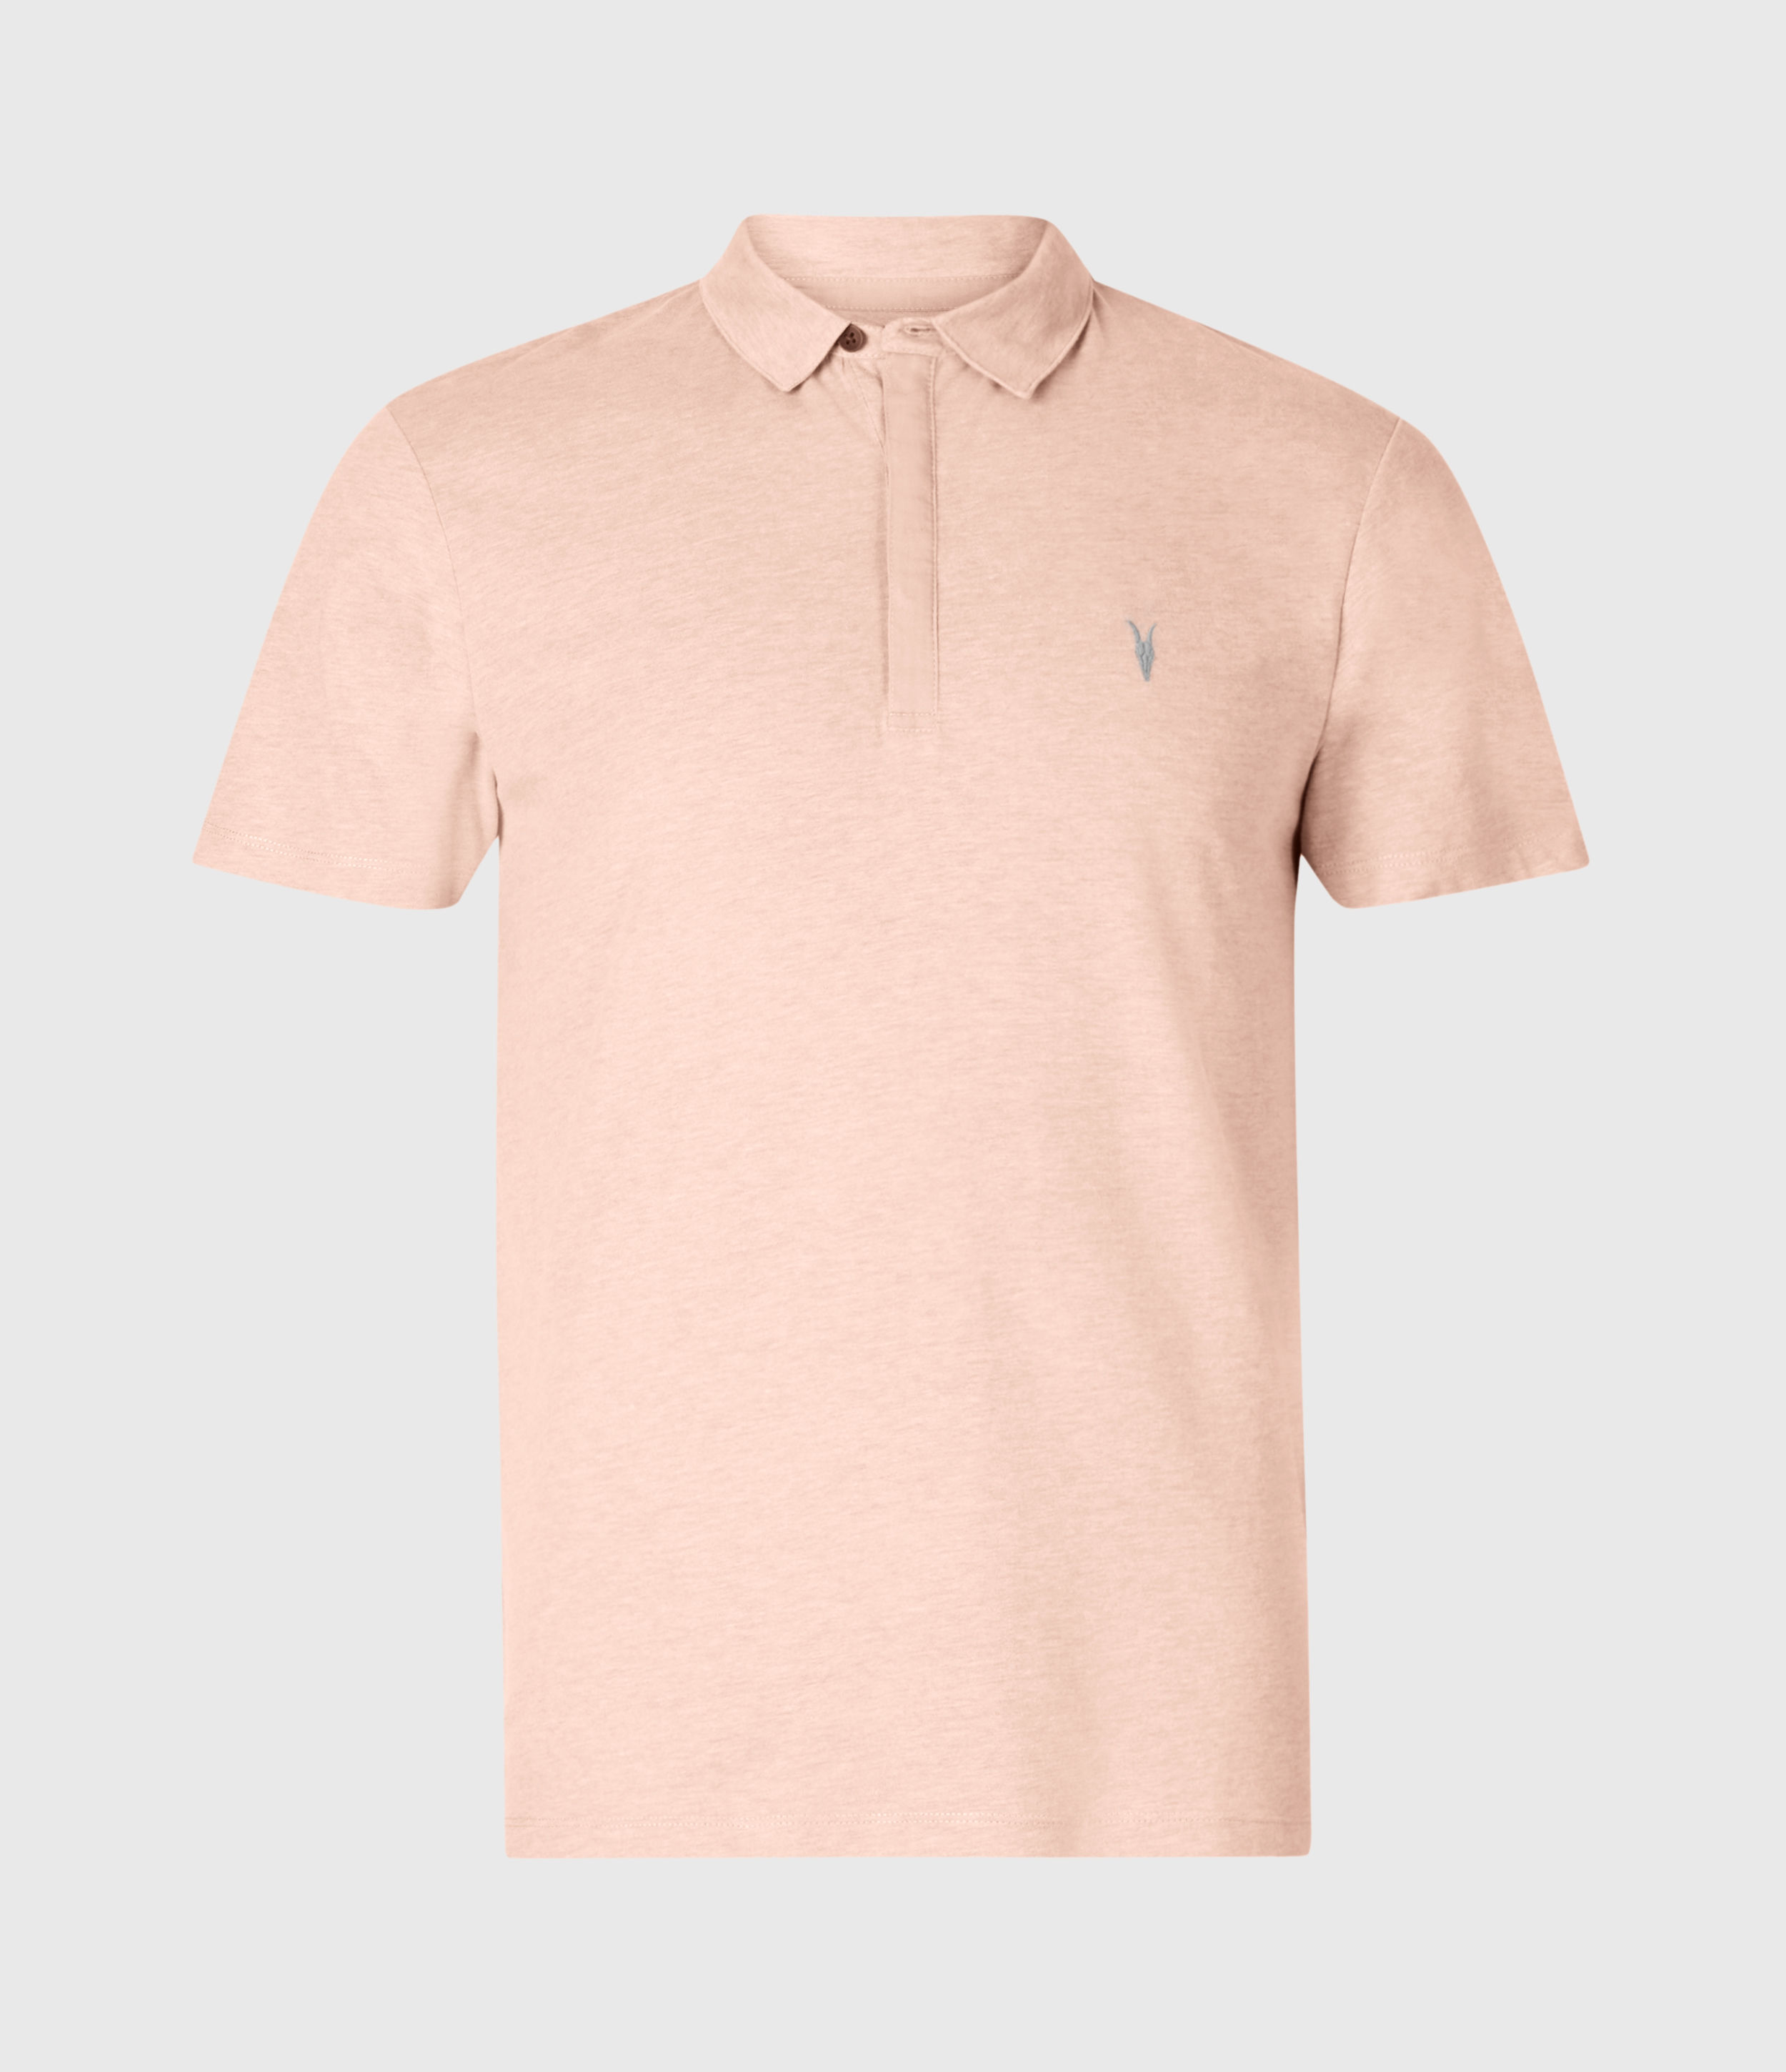 AllSaints Brace Short Sleeve Polo Shirt